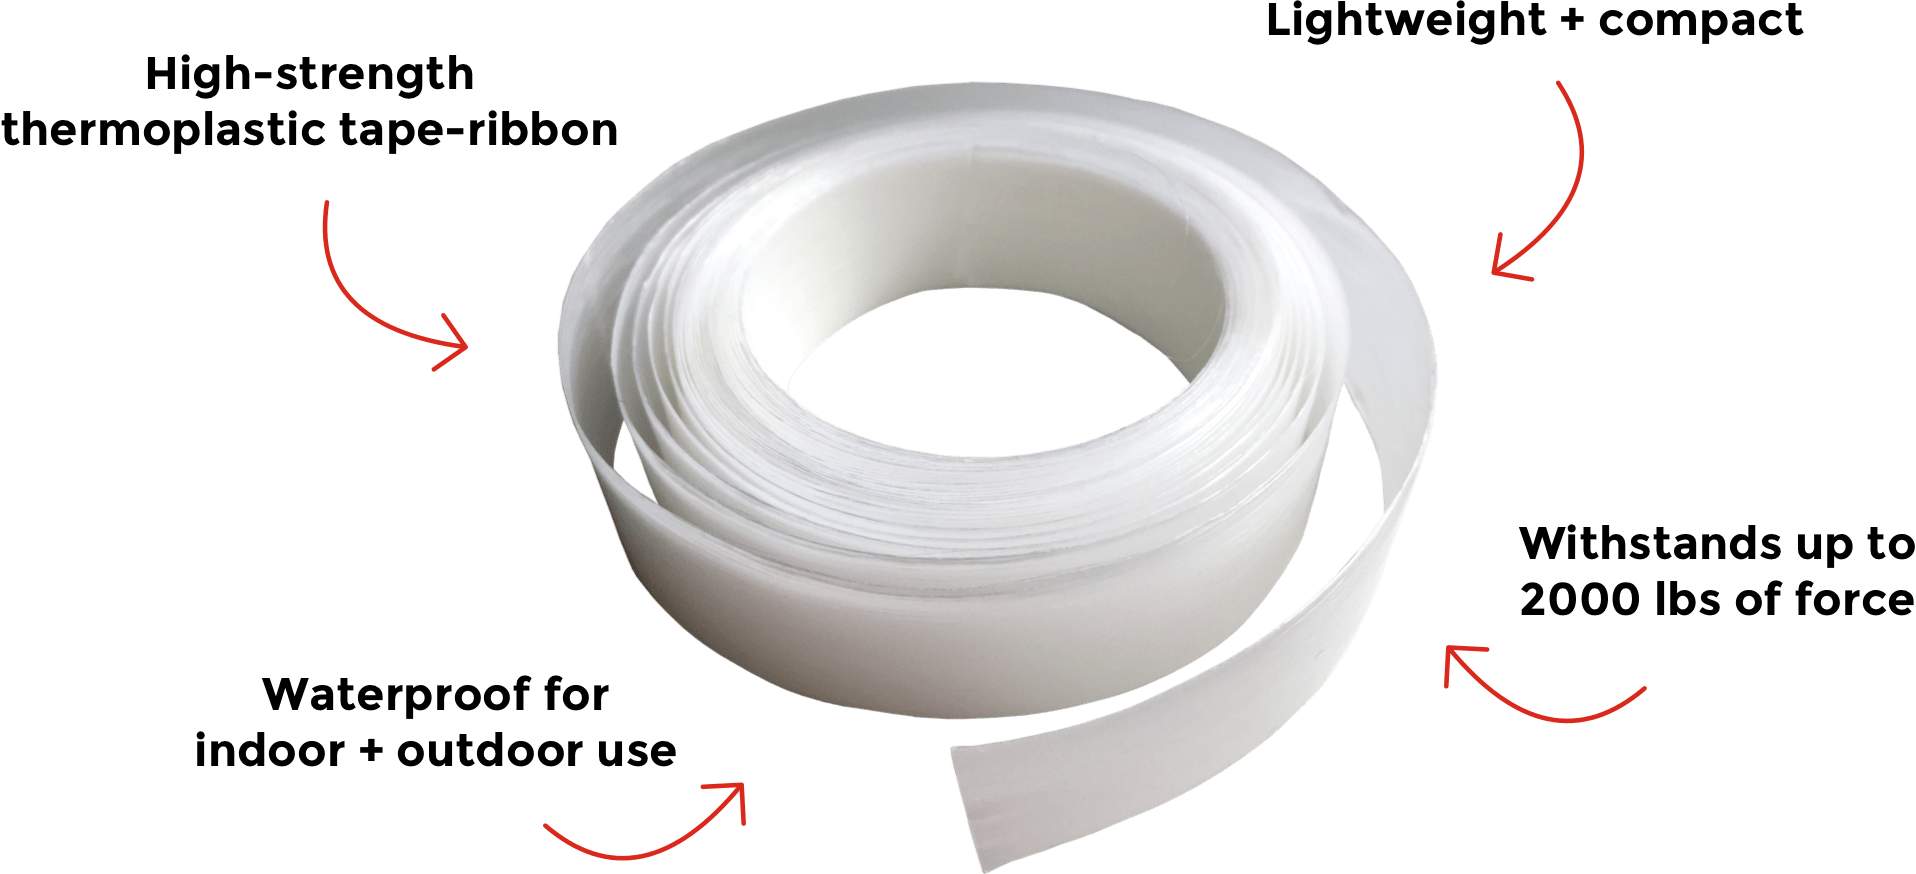 Forj Features: high-strength thermoplastic tape-ribbon, lightweight and compact, waterproof for indoor and outdoor use, and withstands up to 2000 lbs of force.